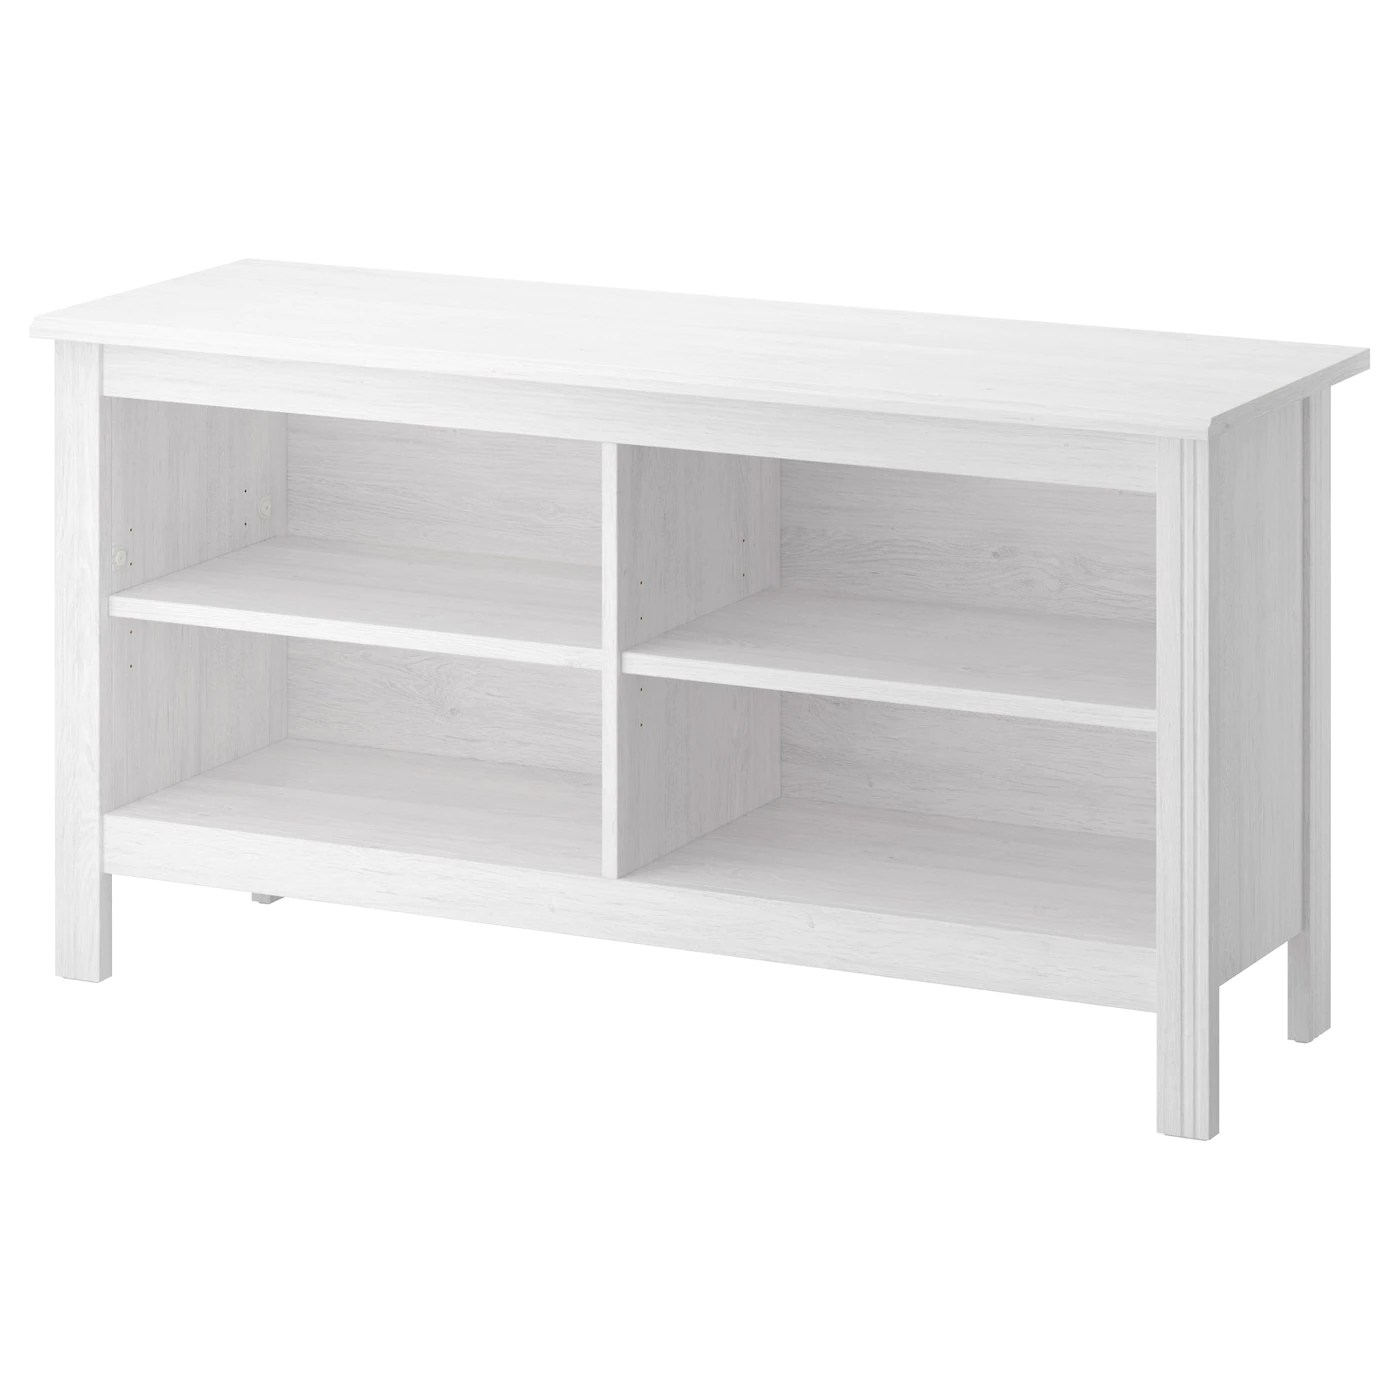 tv chair ikea how much does covers cost brusali bench white 120 x 36 62 cm